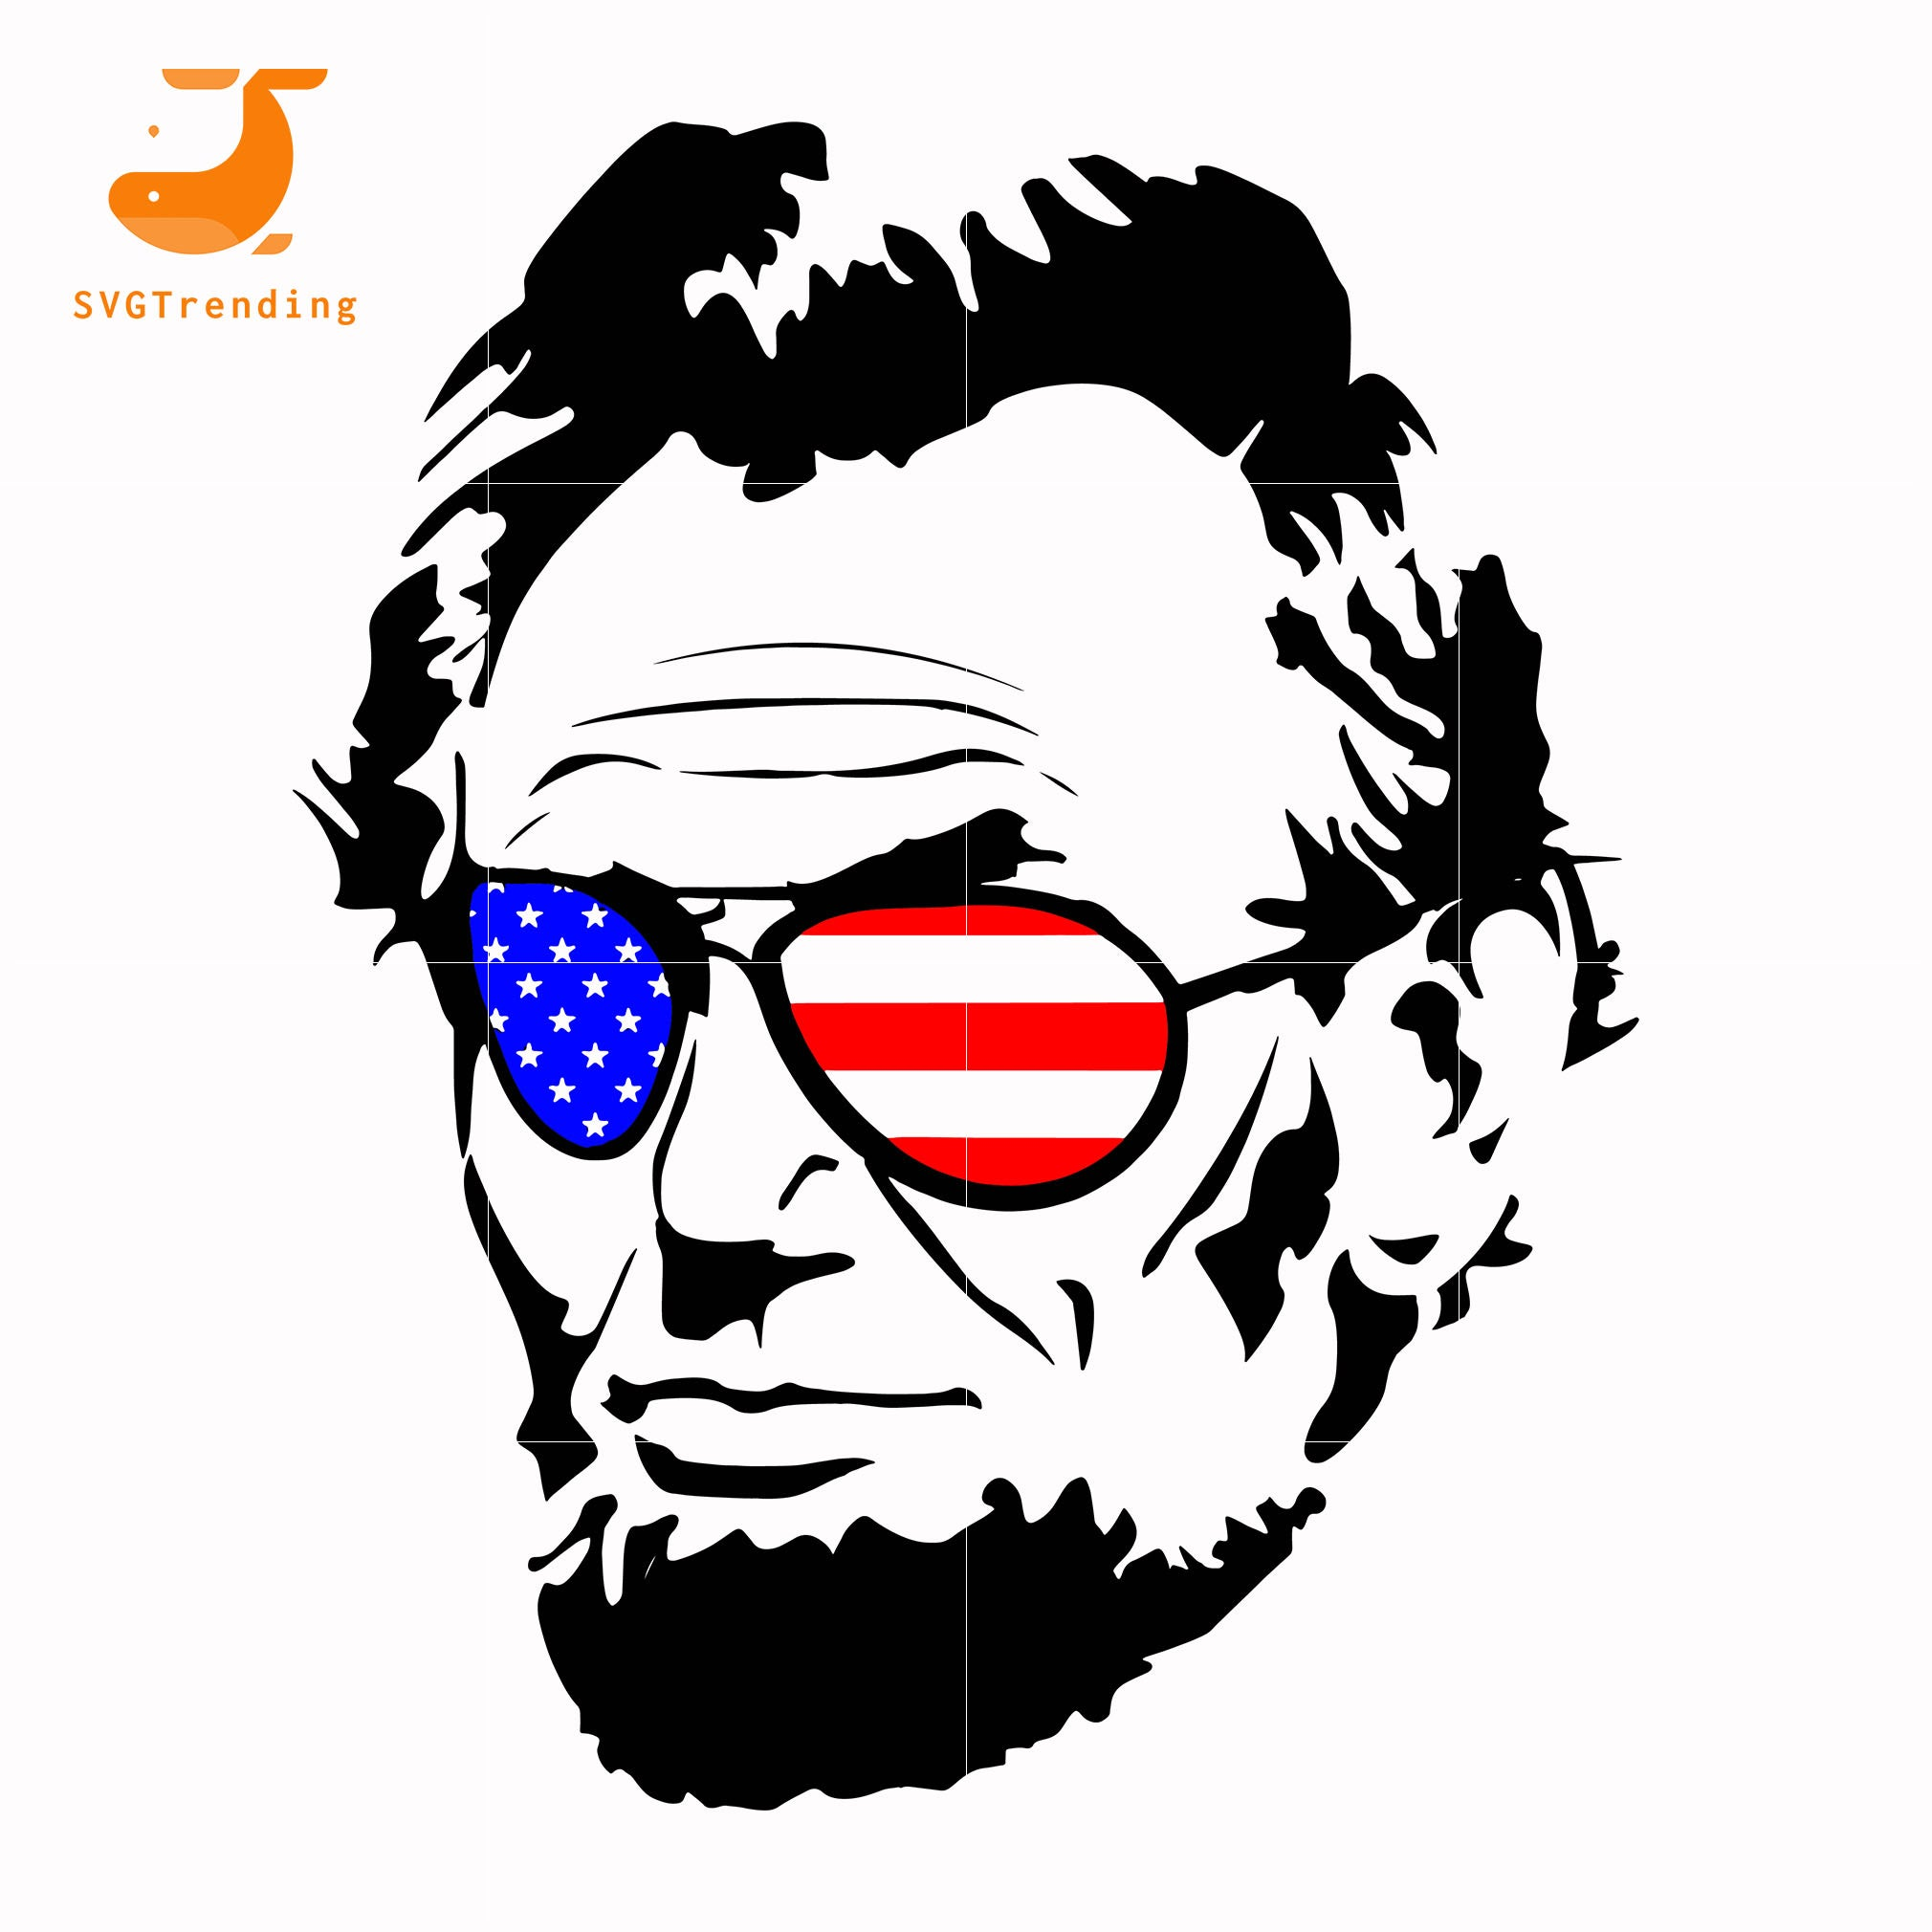 lincoln america svg, png, dxf, eps, digital file